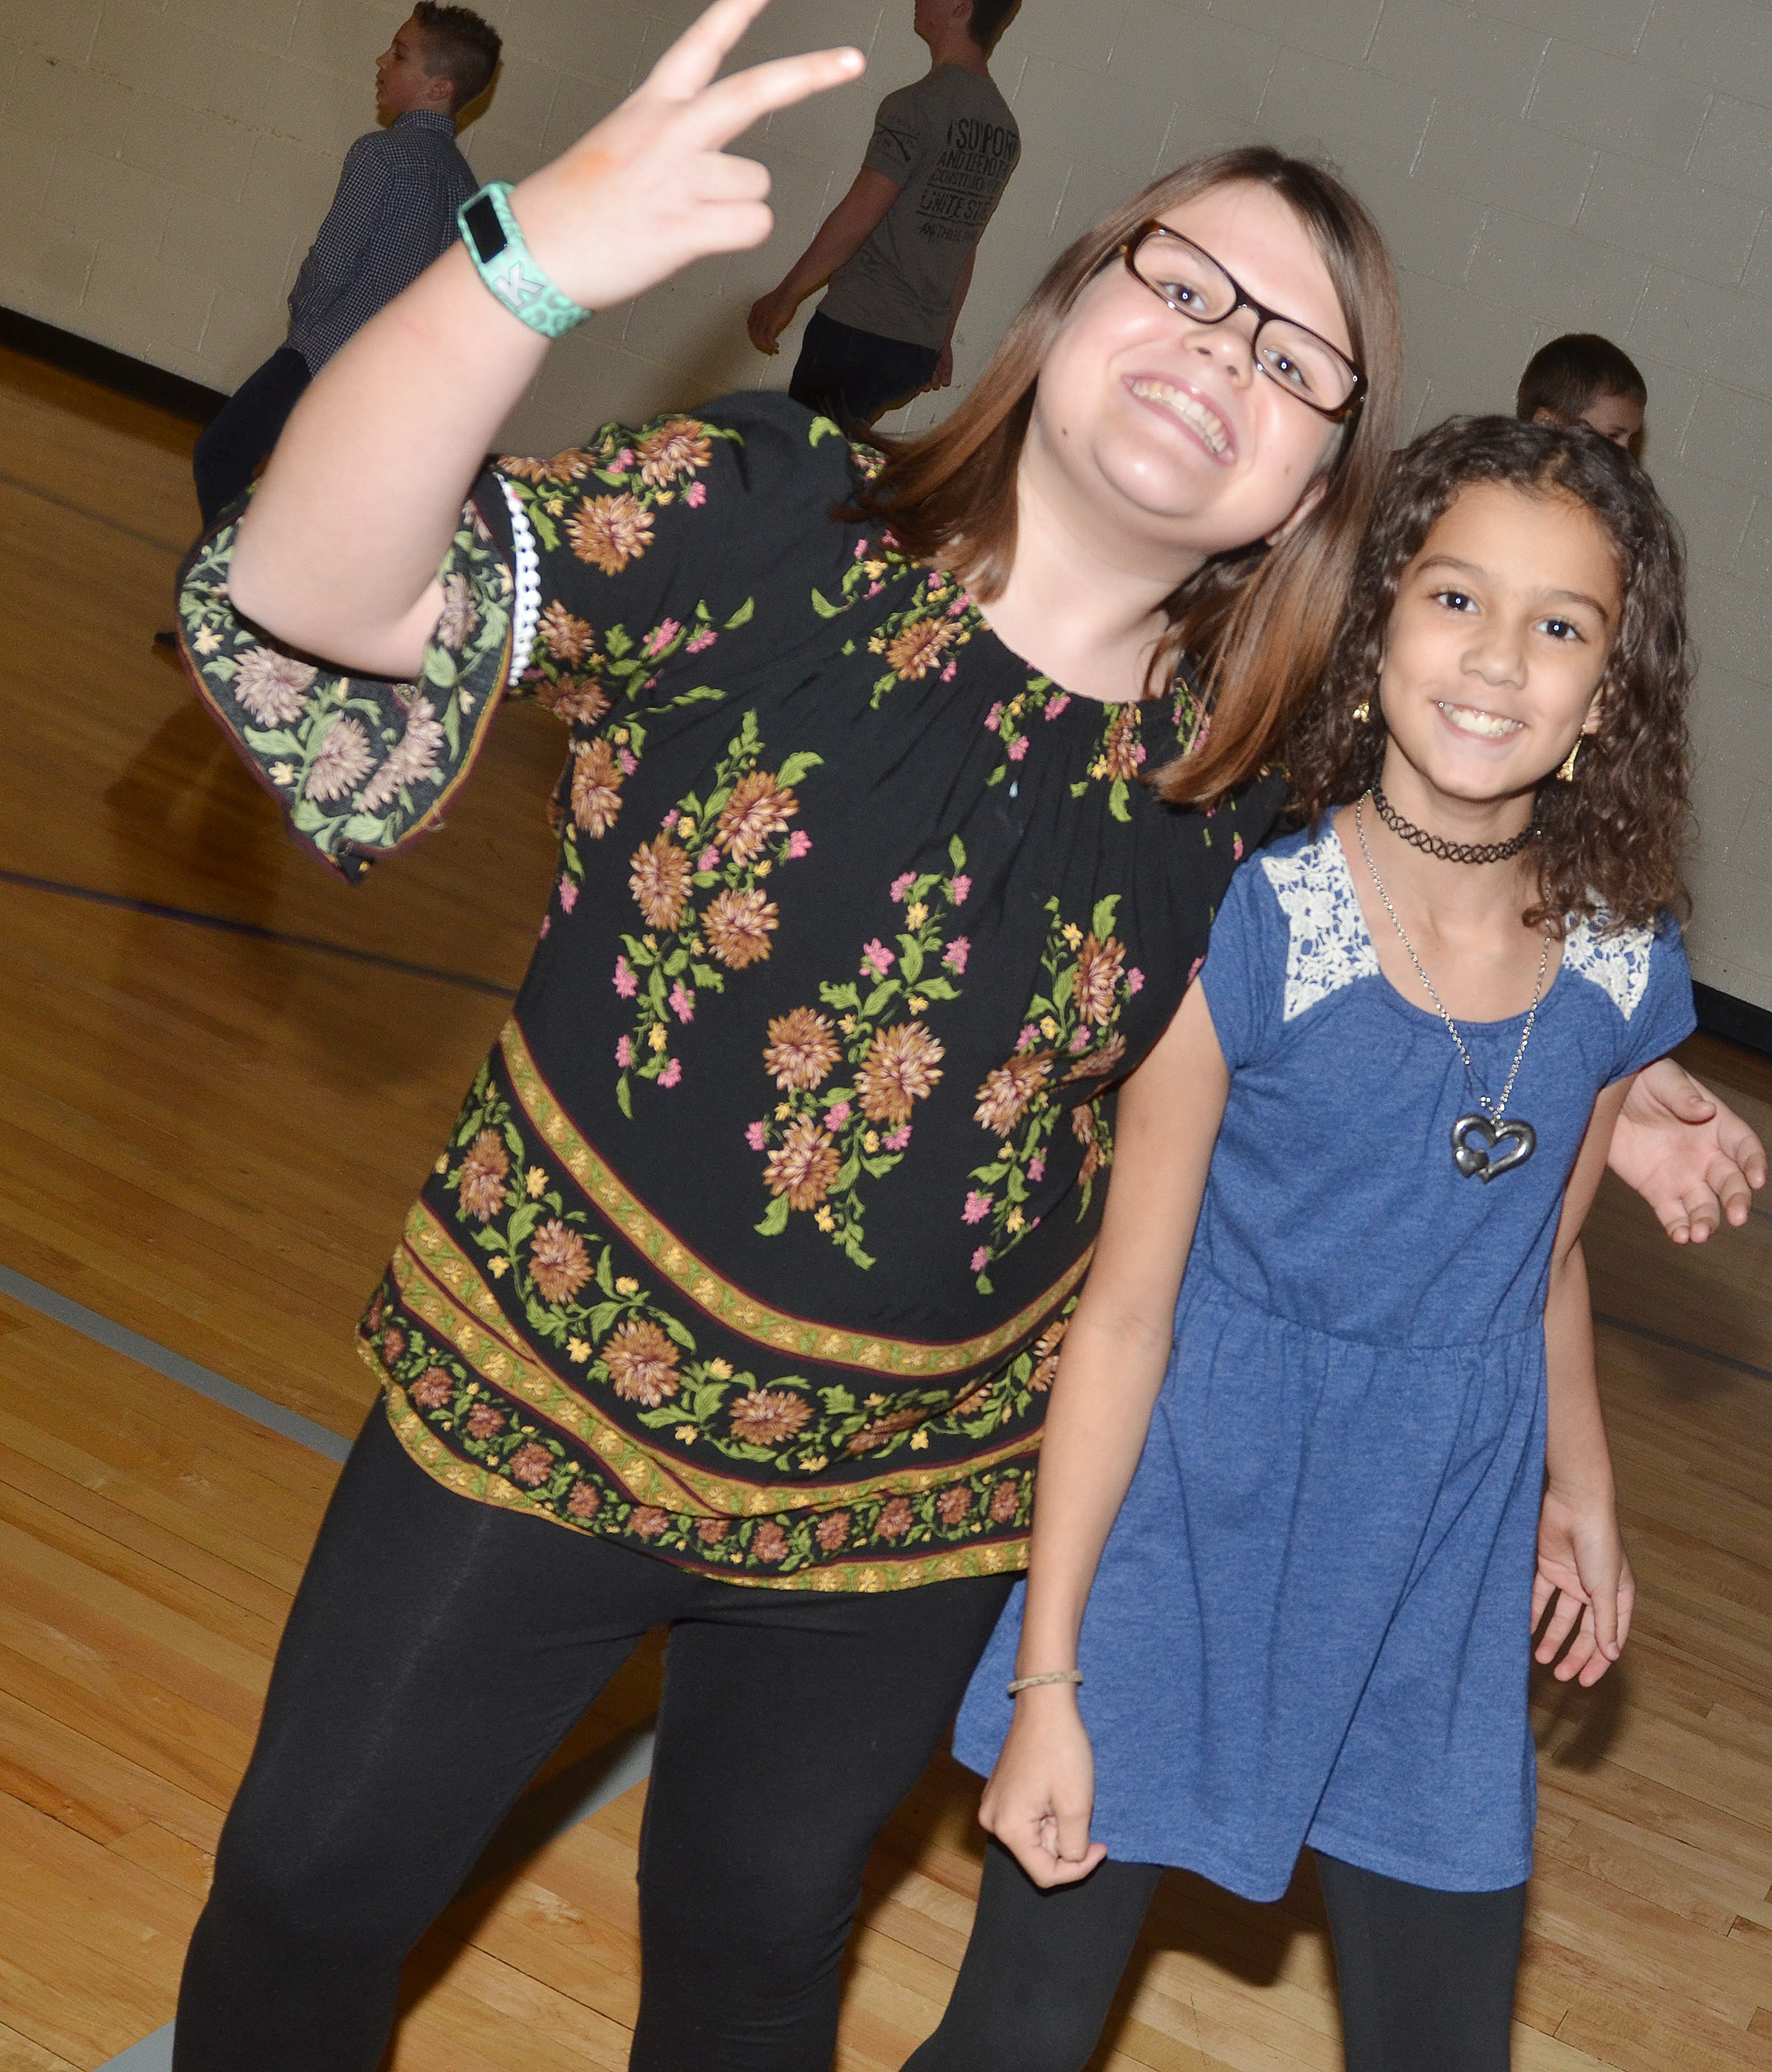 CES fifth-graders Keely Dicken, at left, and Mackenzie Negron smile for a photo at the dance.